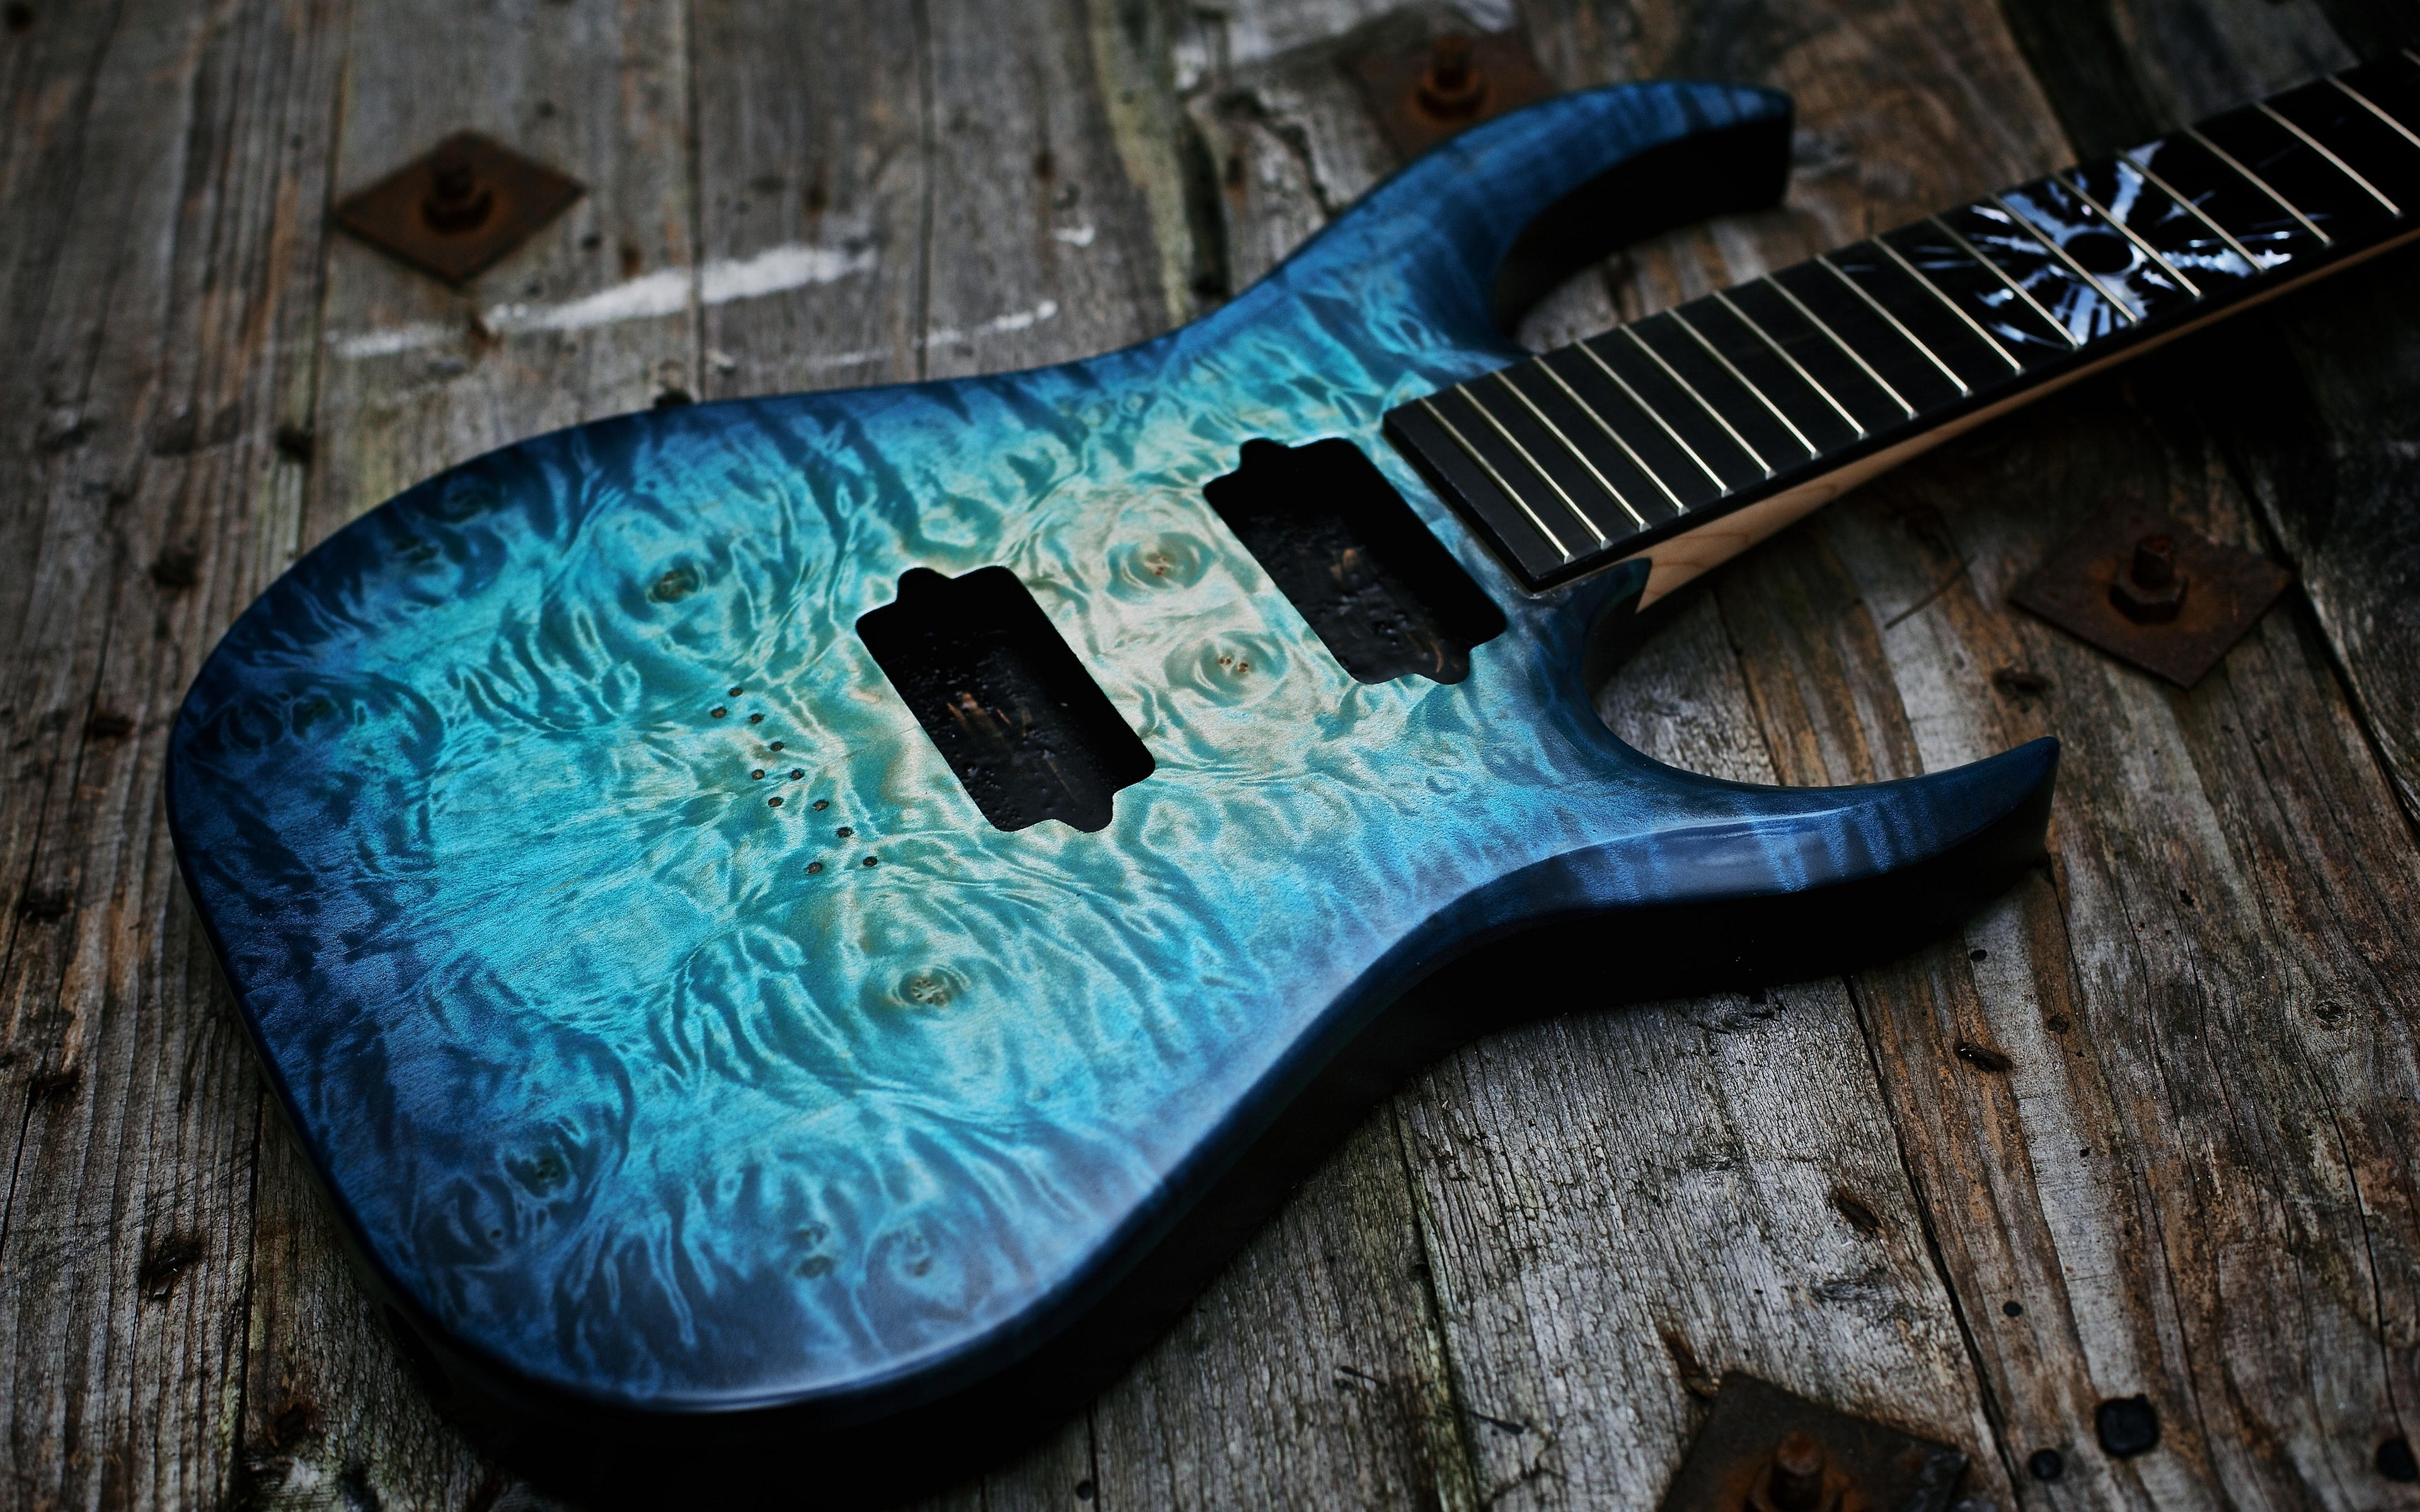 Electric Blue Wallpaper Hd Guitare 4k Ultra Hd Fond D 233 Cran And Arri 232 Re Plan